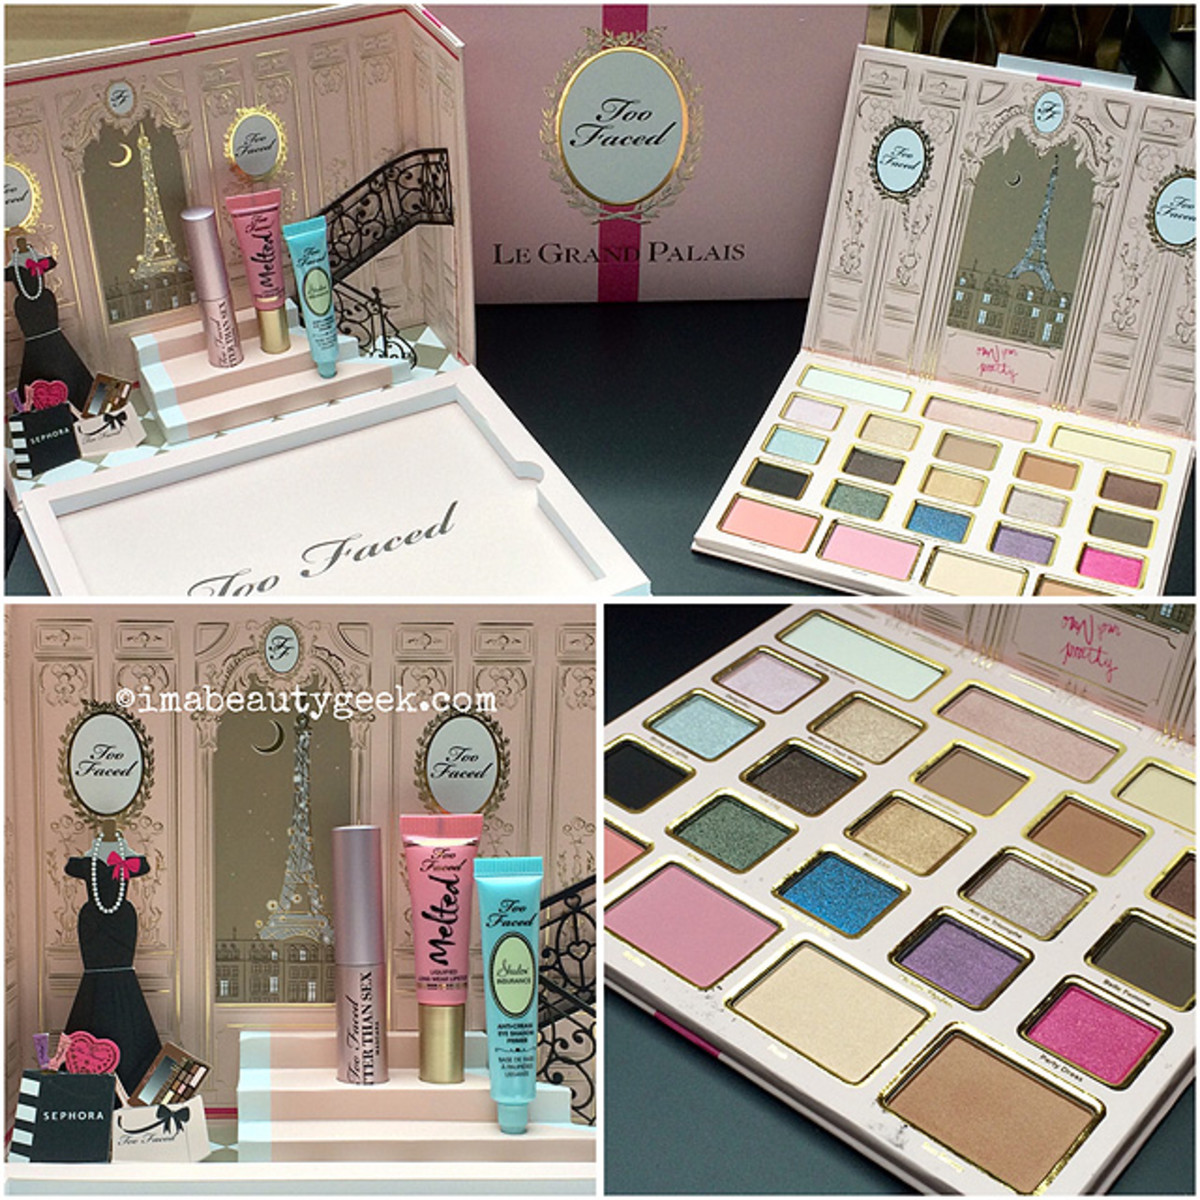 Too Faced holiday 2015 sneak peek_Le Grand Palais